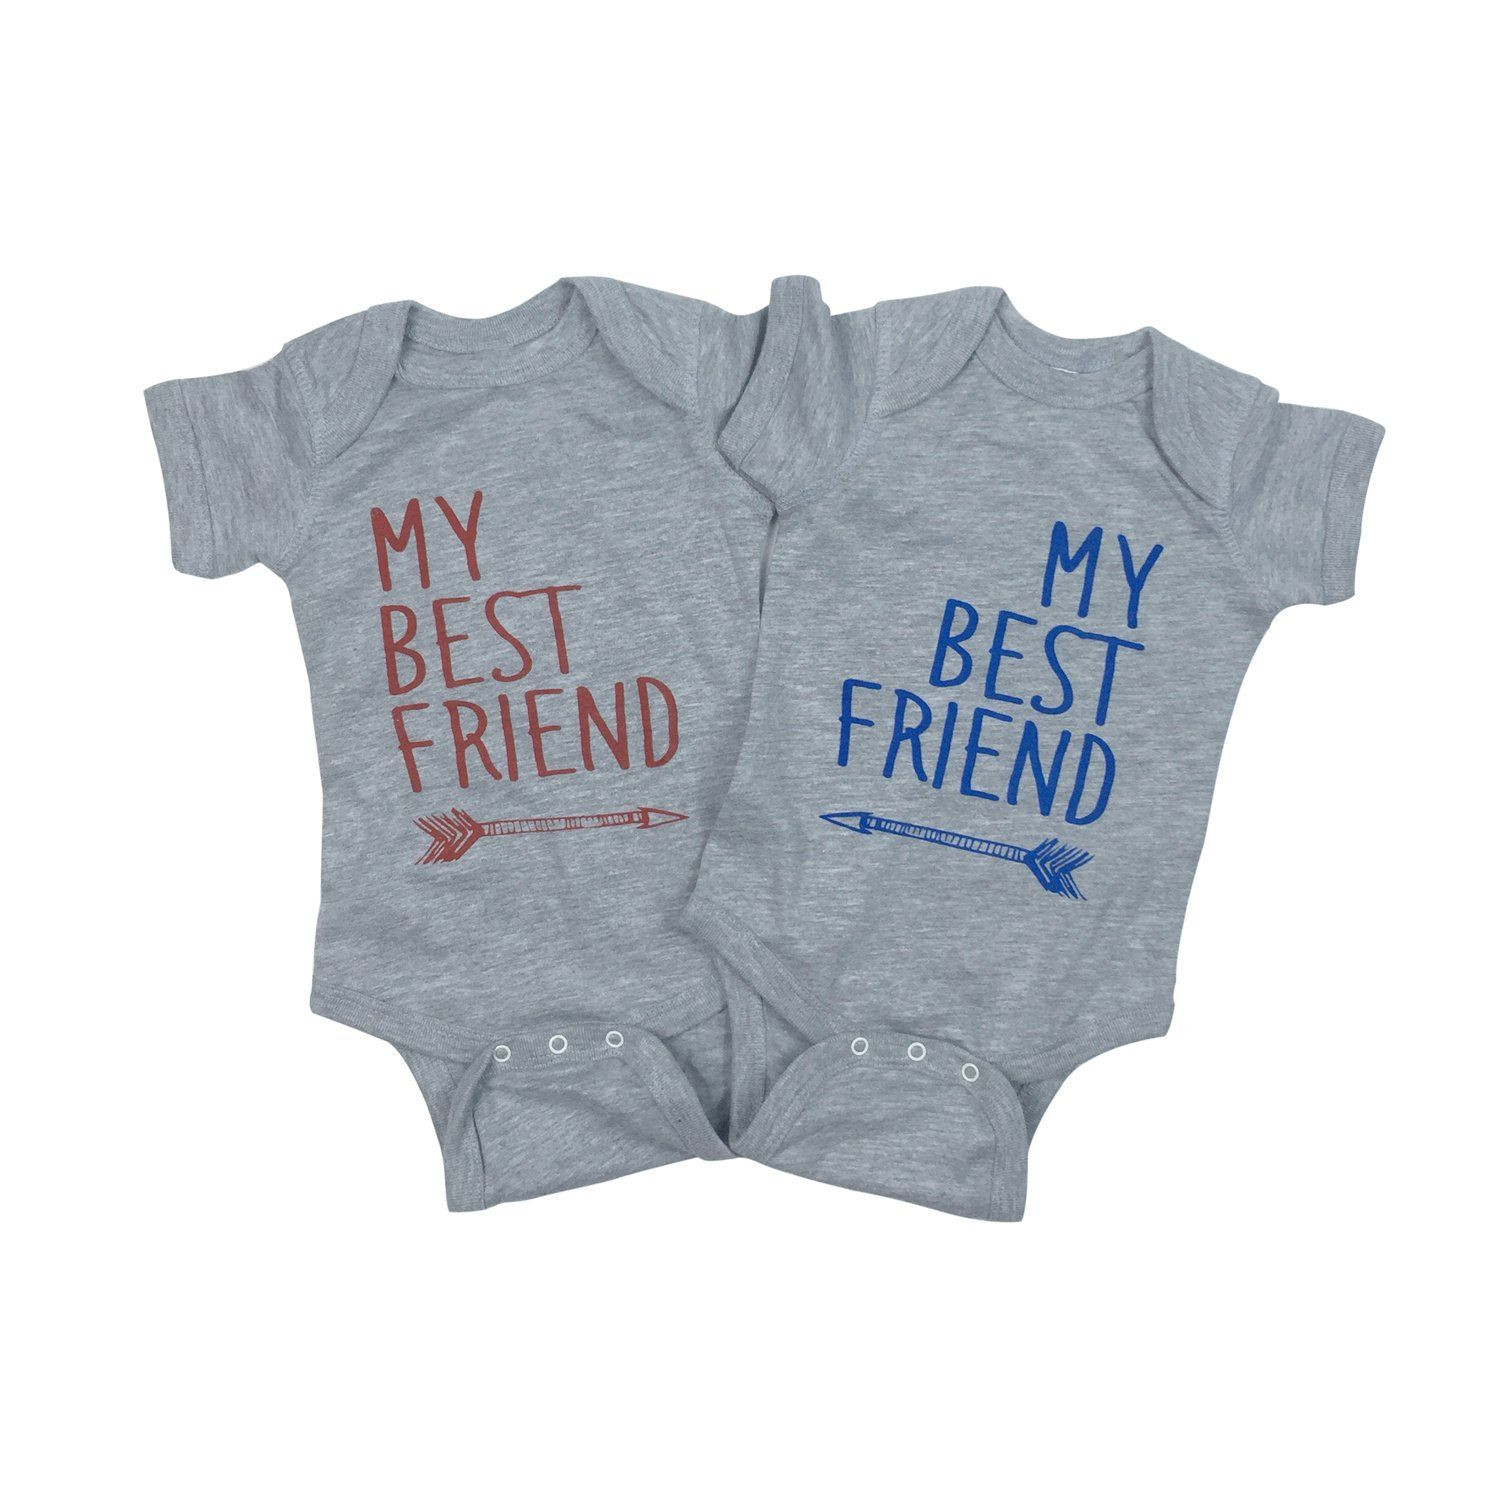 Boy Girl Twin Outfits Twin Boy and Girl Baby Clothes PERFECT BOY